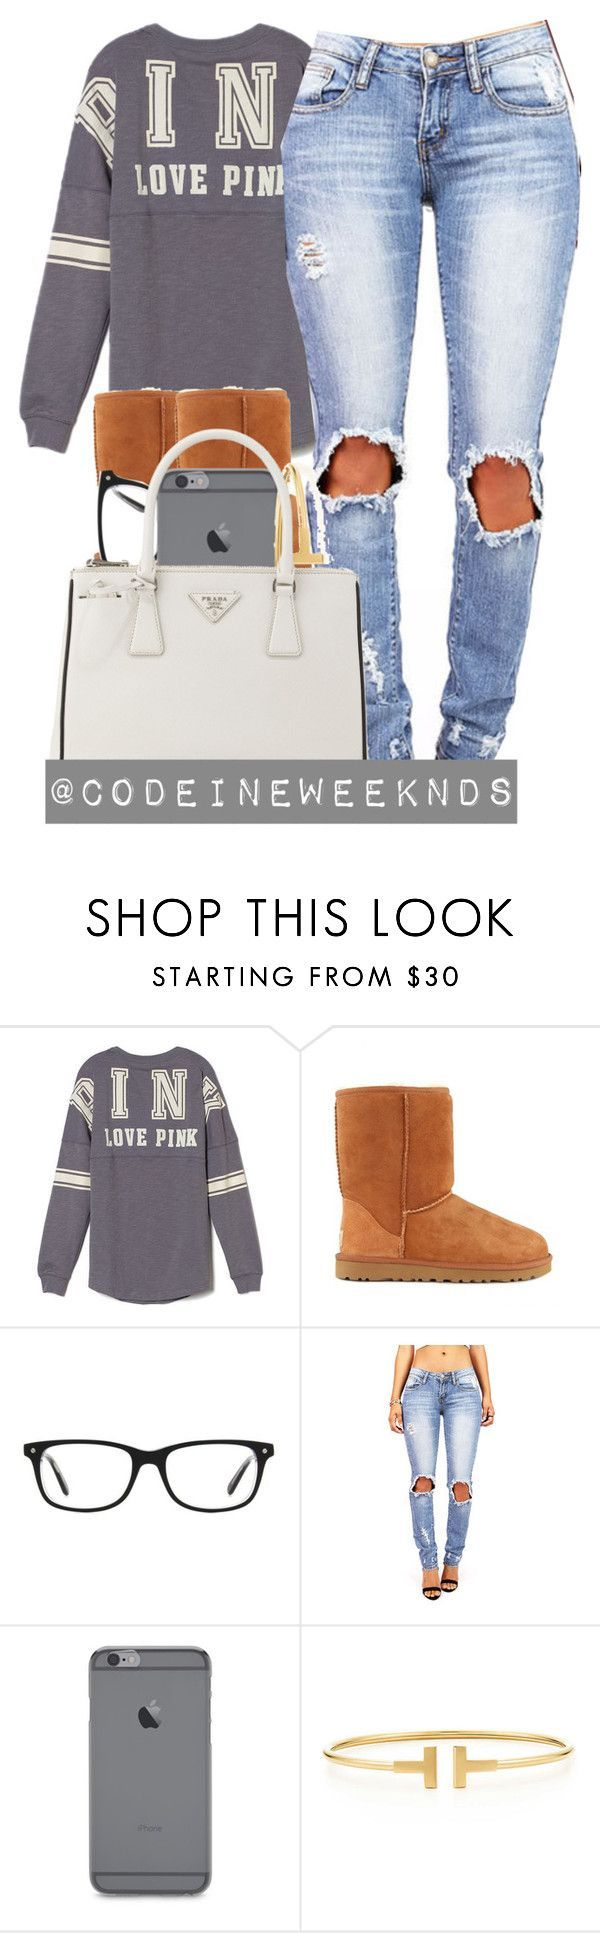 """""""12/20/15"""" by codeineweeknds ❤ liked on Polyvore featuring Victoria's Secret PINK, UGG Australia, Kensington Road, Tiffany & Co., Prada, women's clothing, women, female, woman and misses"""